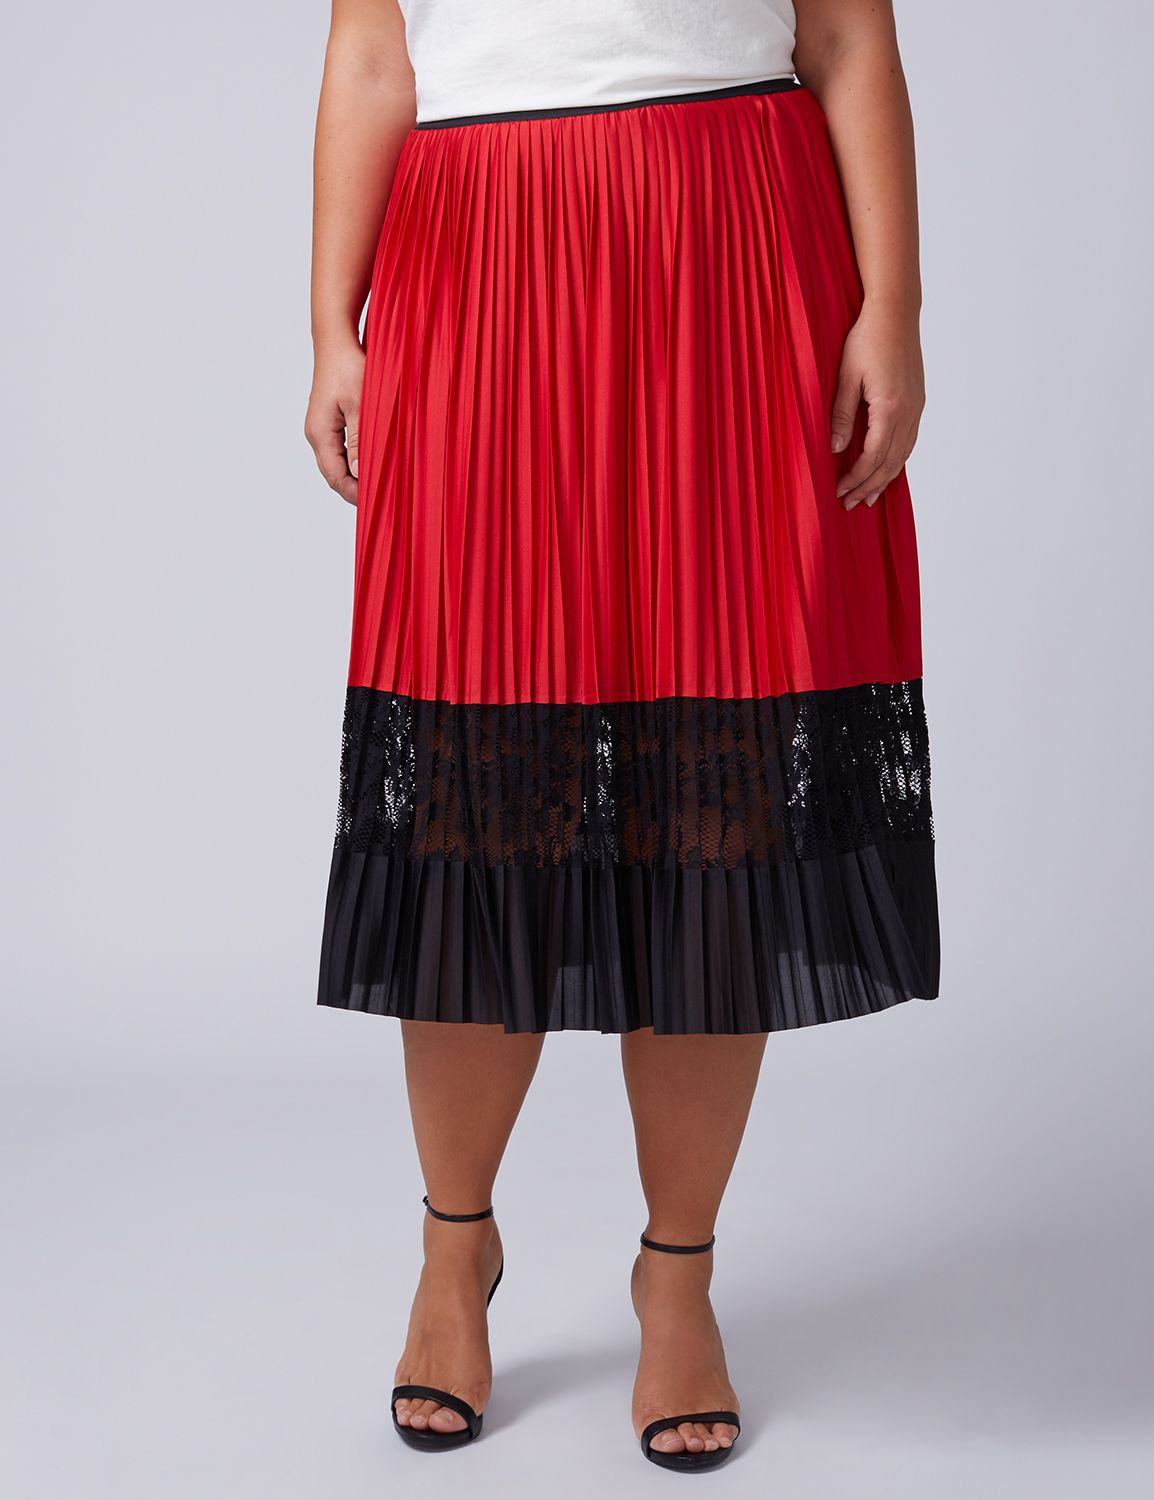 Lane Bryant Womens Pleated Midi Skirt With Lace Inset 18/20 Venetian Red